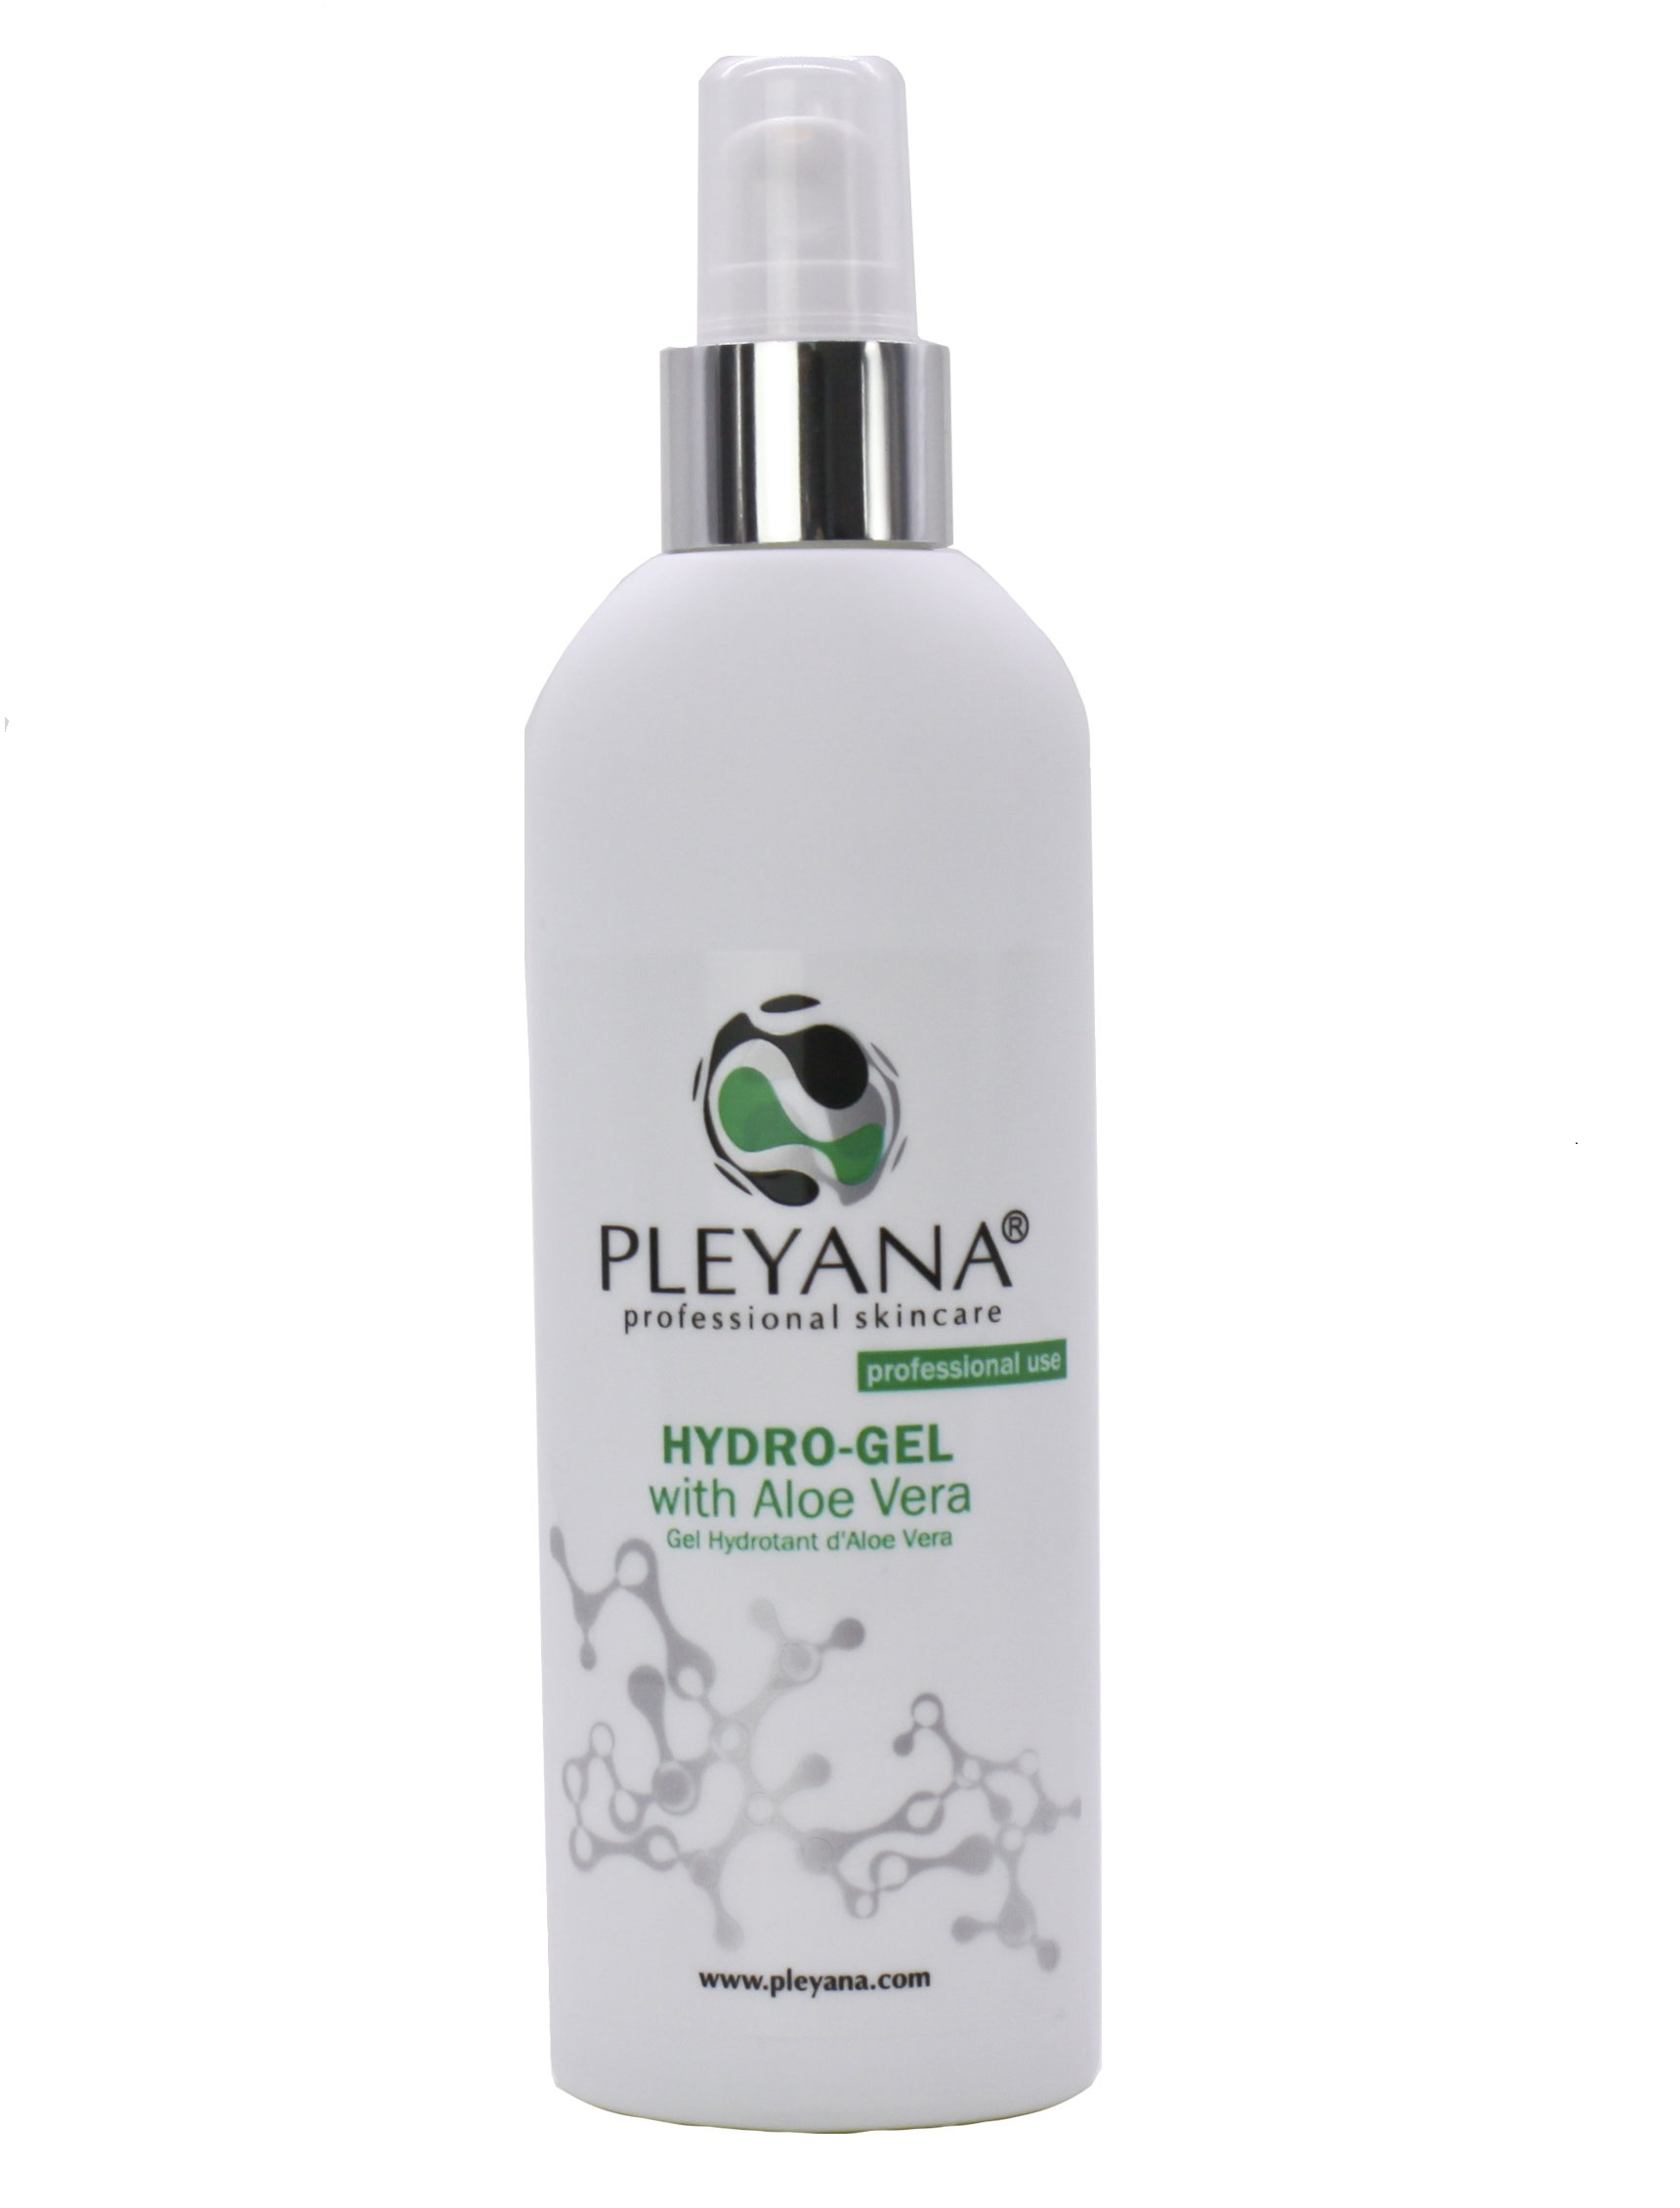 Гидро-гель с алое вера Pleyana Hydro-Gel With Aloe Vera